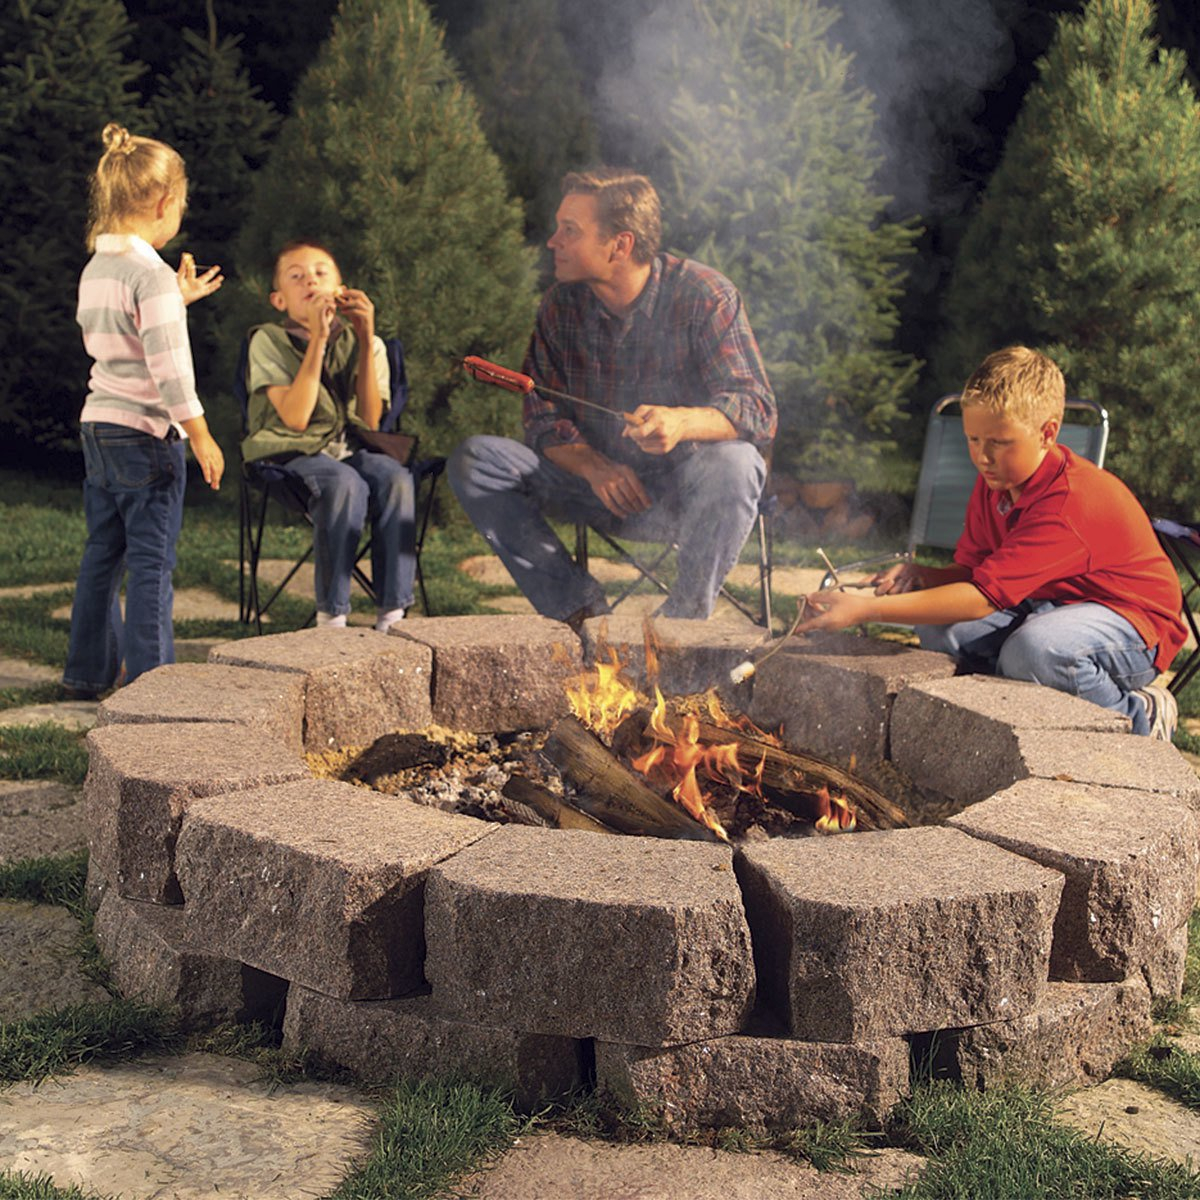 12 Great Backyard Fire Pit Ideas The Family Handyman intended for Ideas For Fire Pits In Backyard